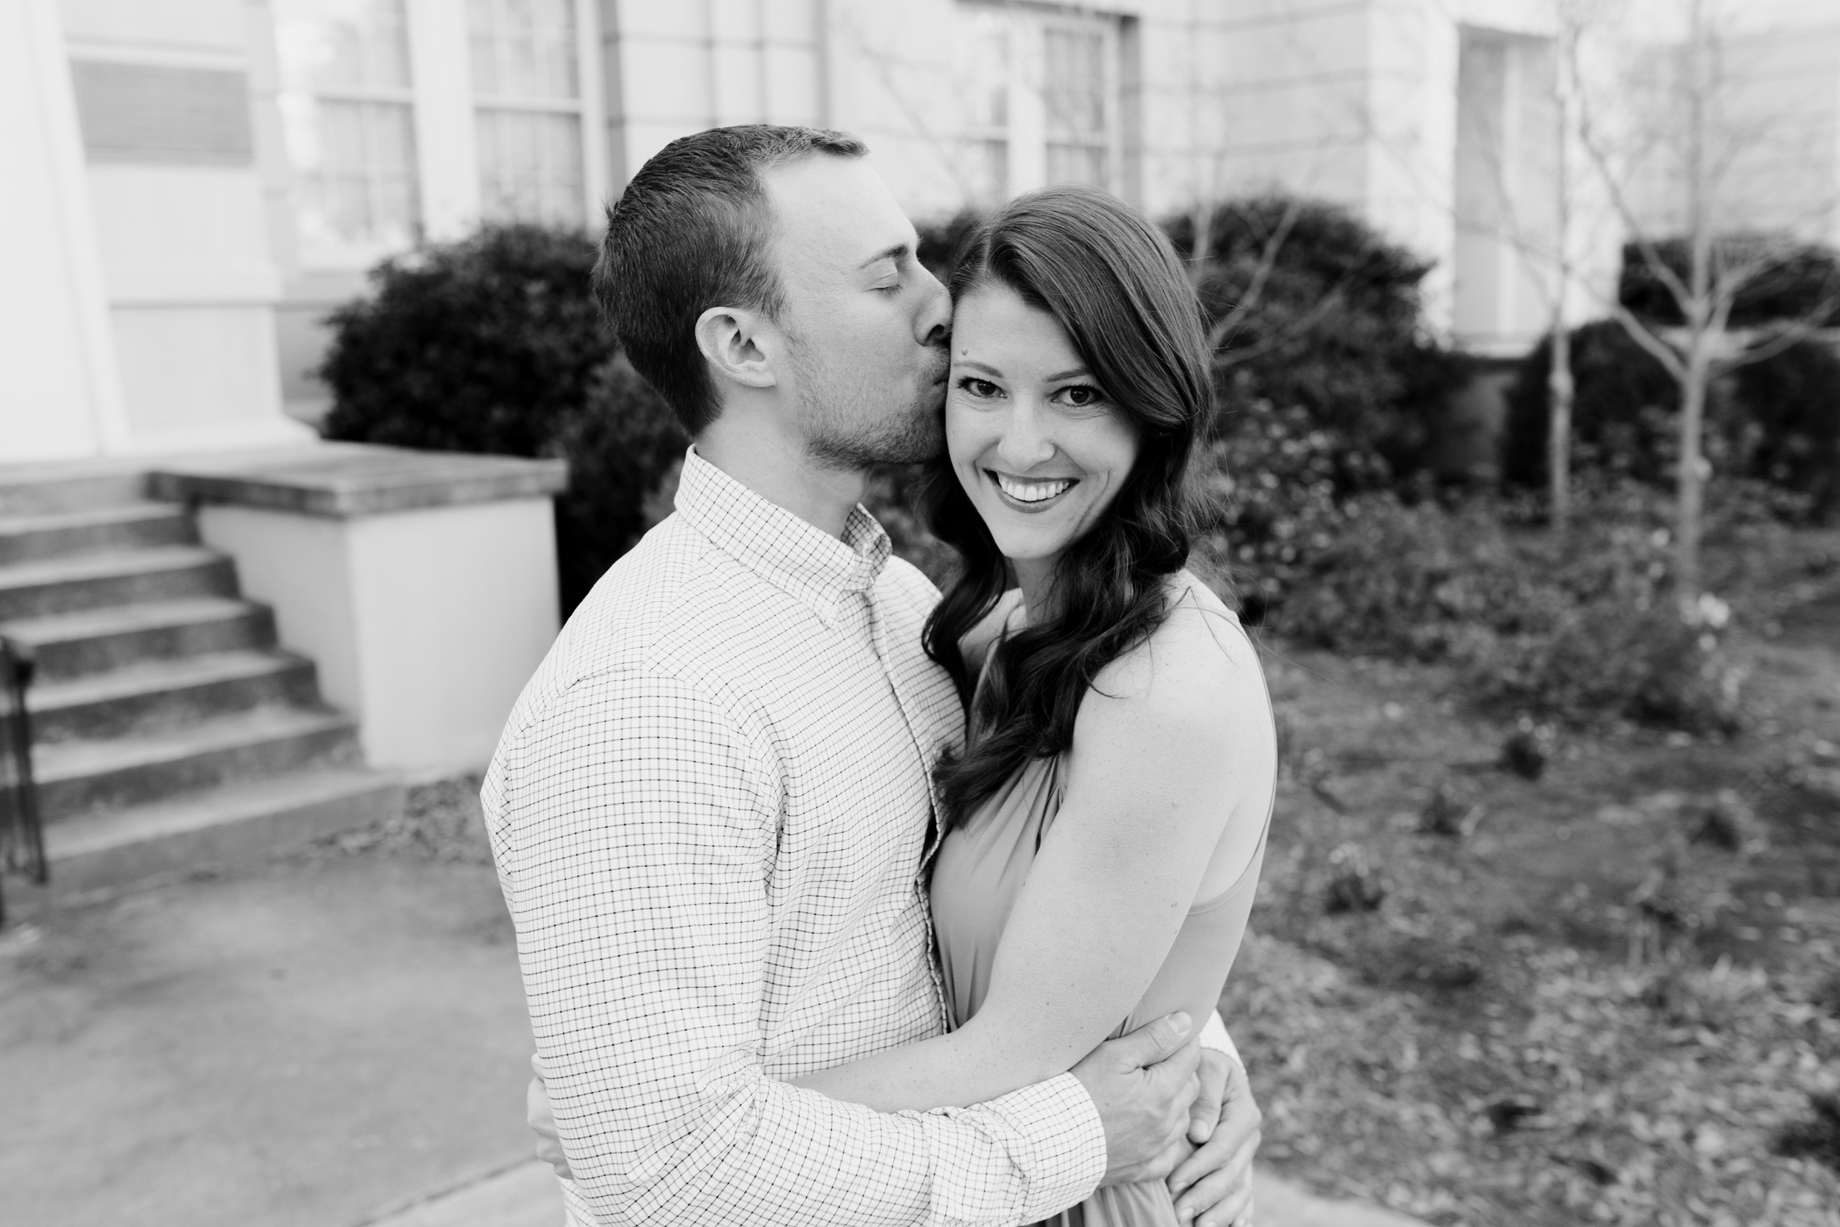 004-athens-uga-engagement-photos.jpg